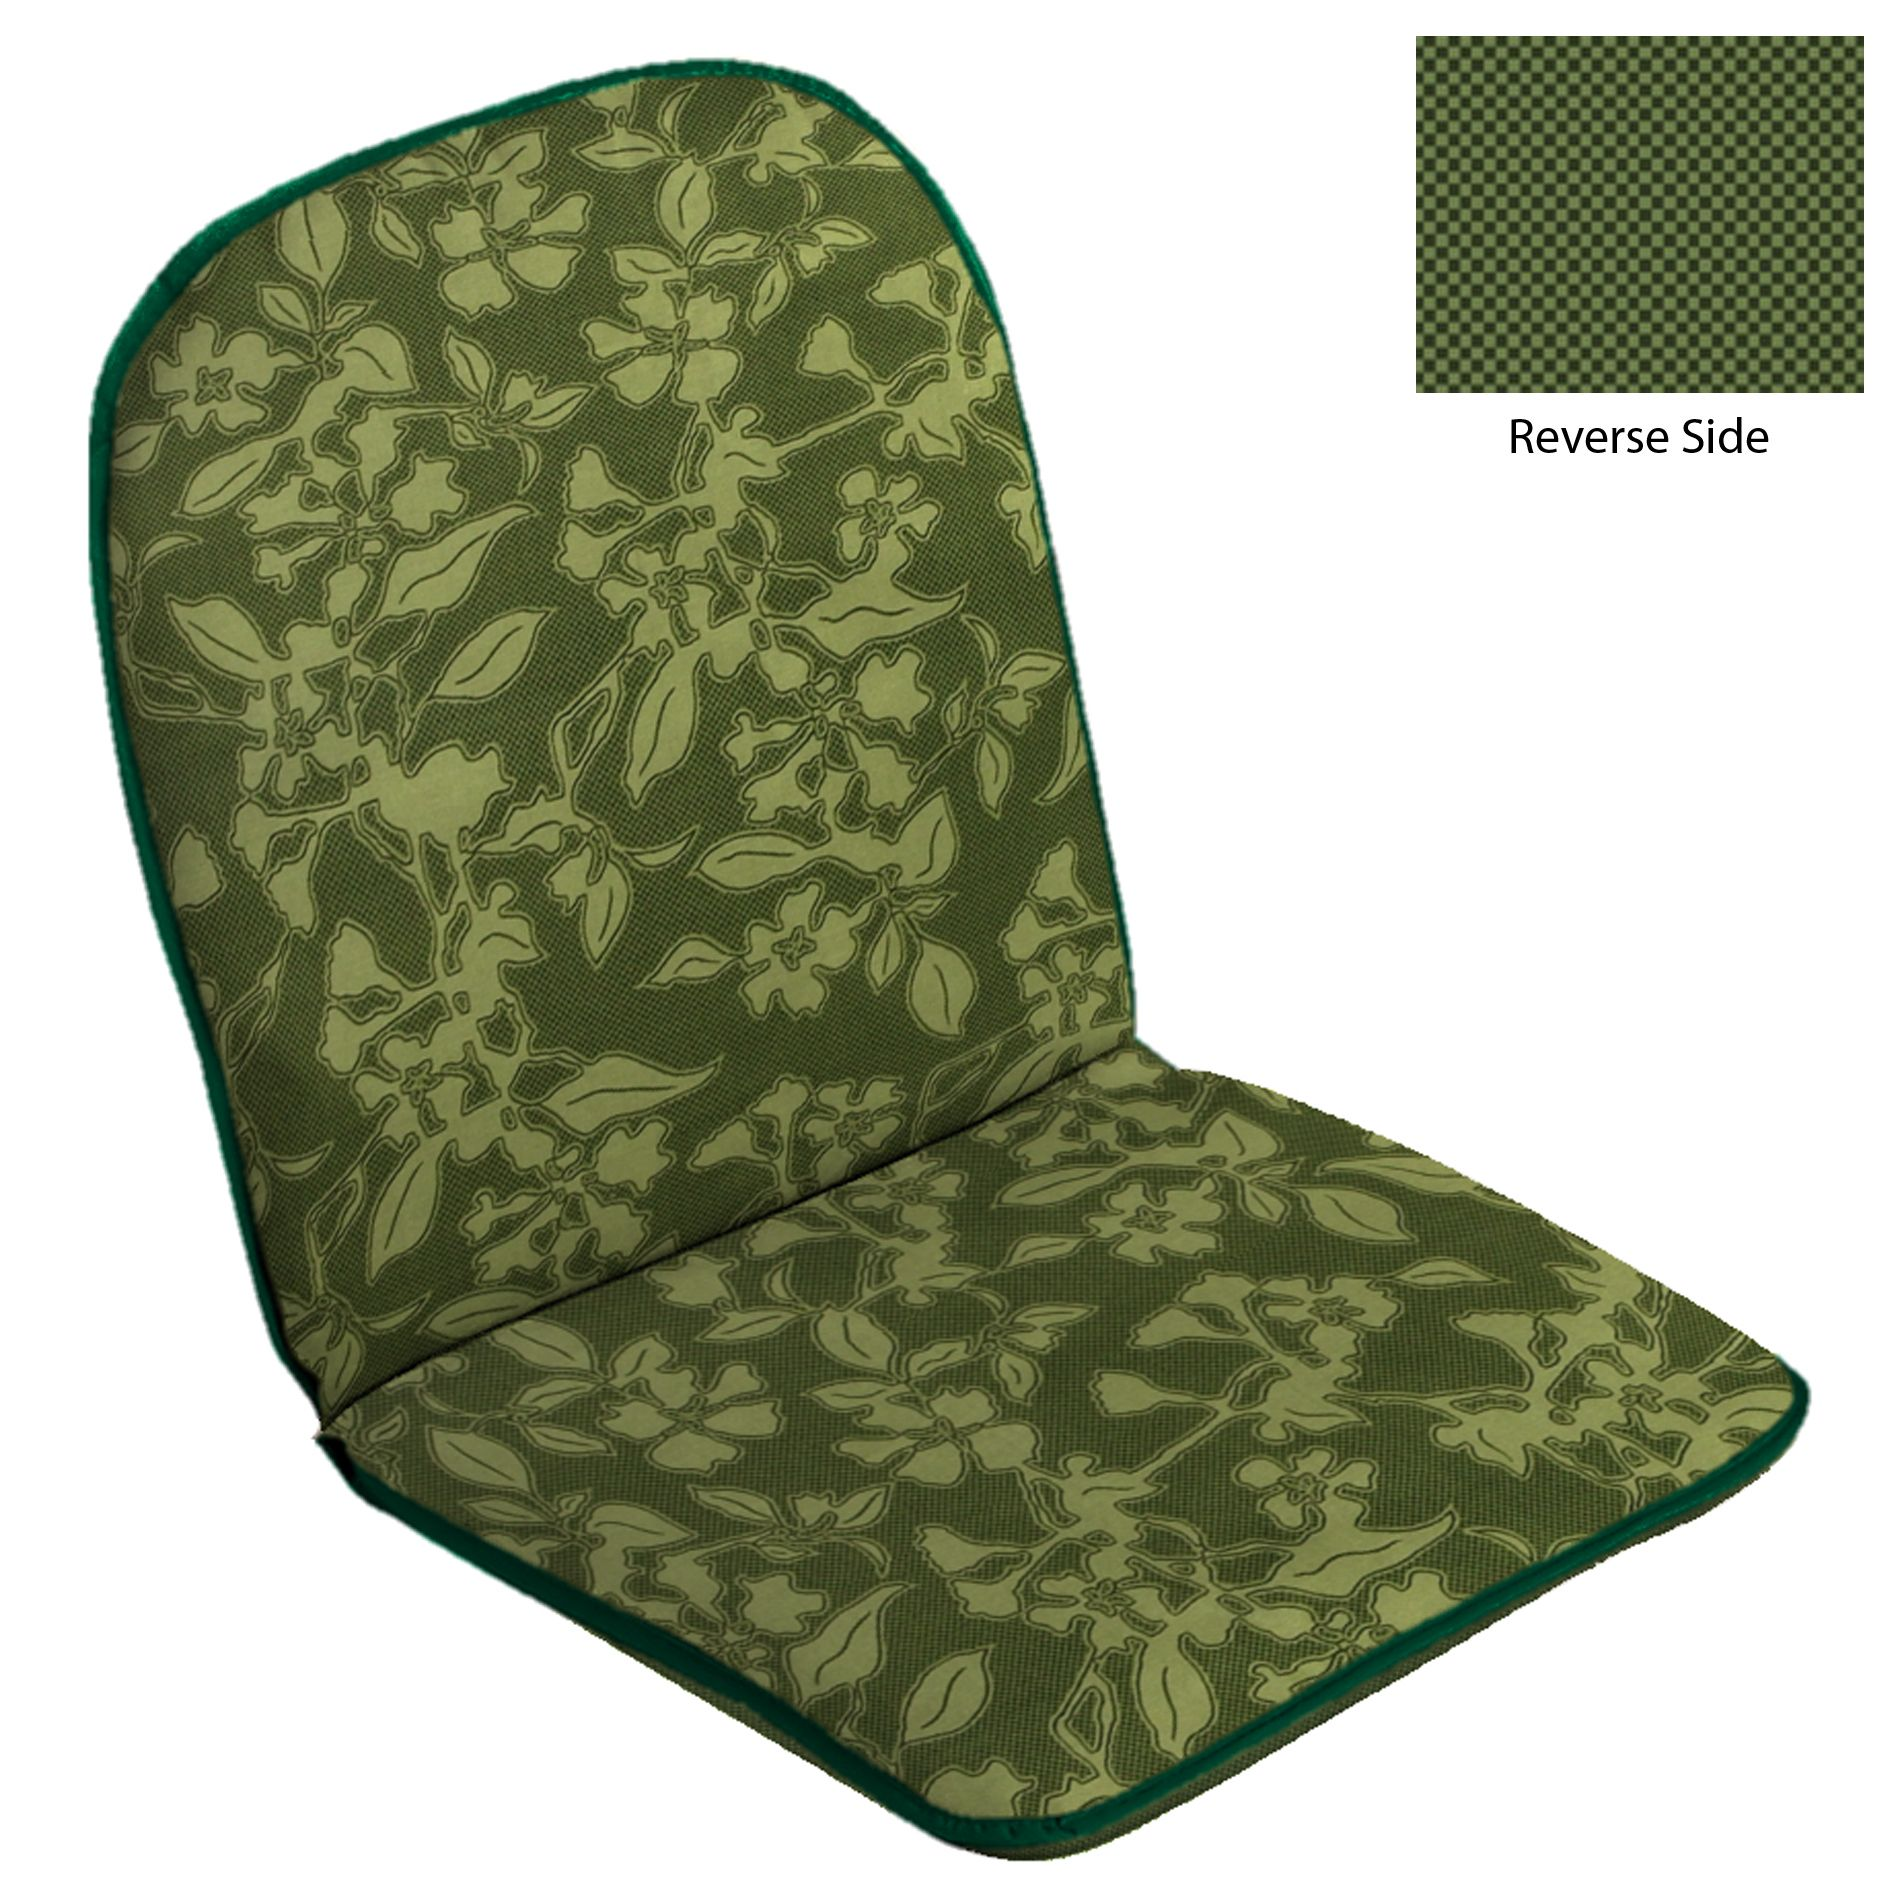 Patio Hinged Chair Cushion - Douglas/Douglas Texture                                                                             at mygofer.com